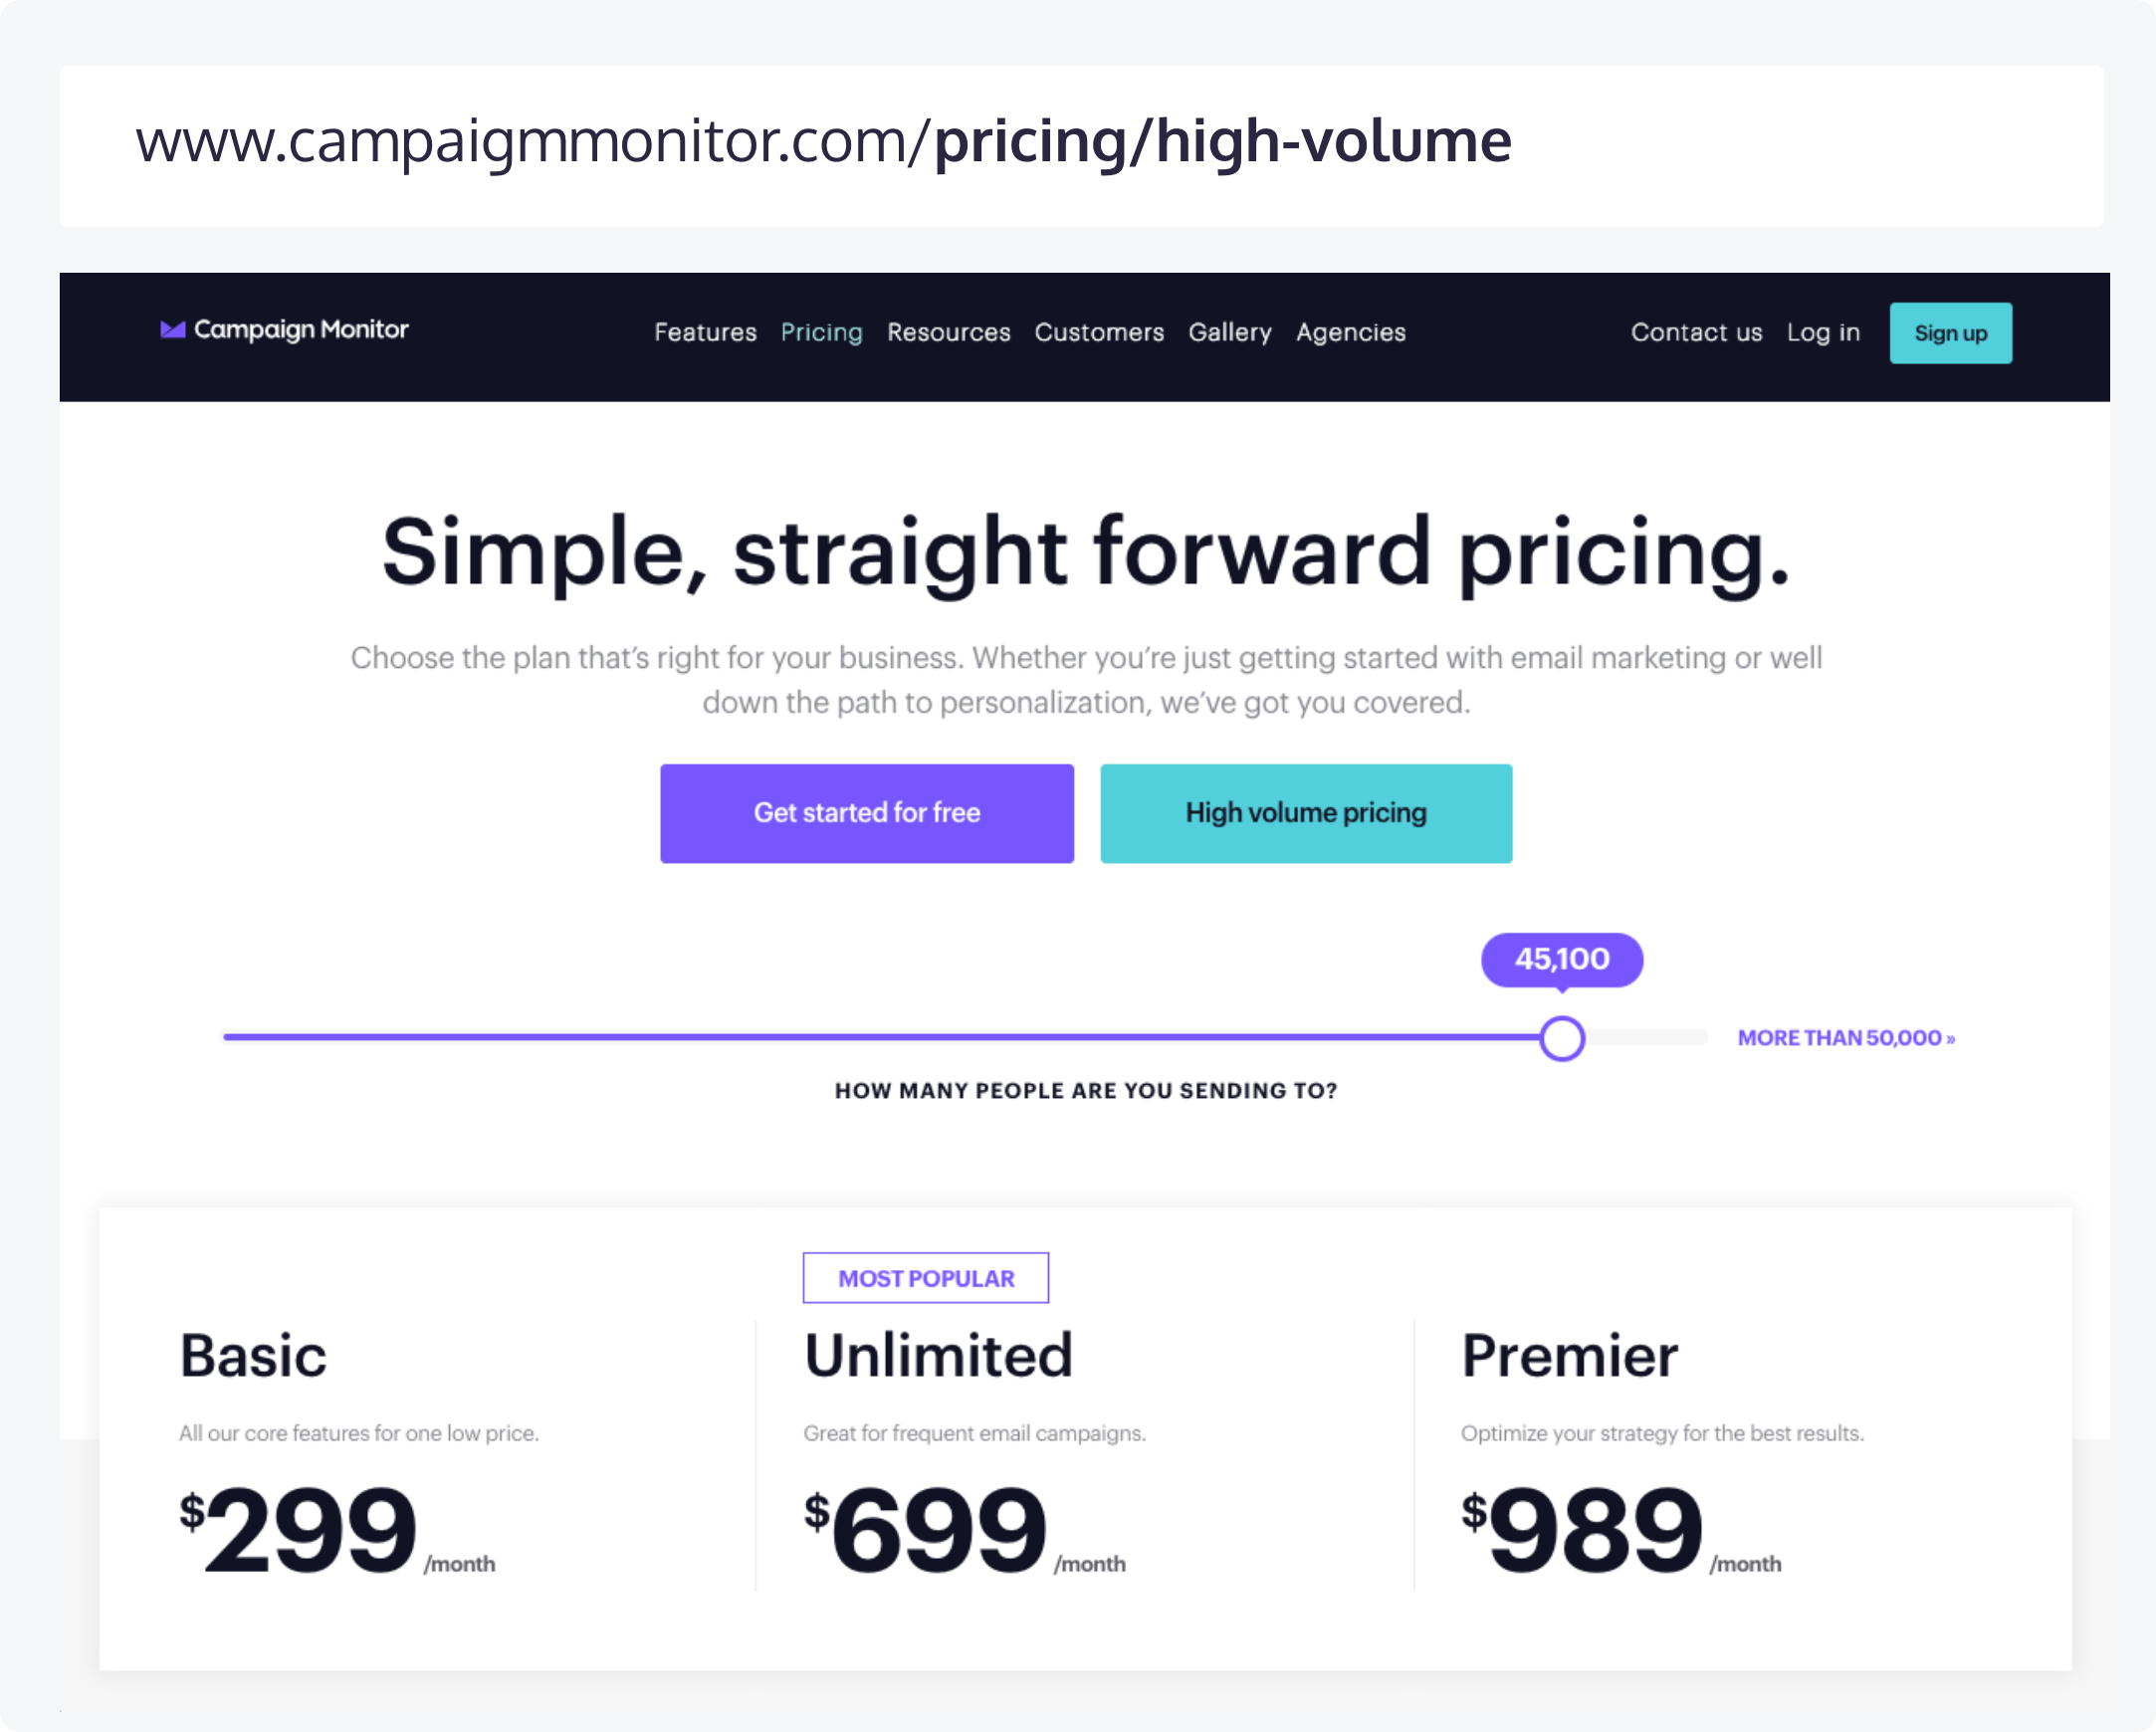 The Campaign Monitor pricing page and its corresponding URL